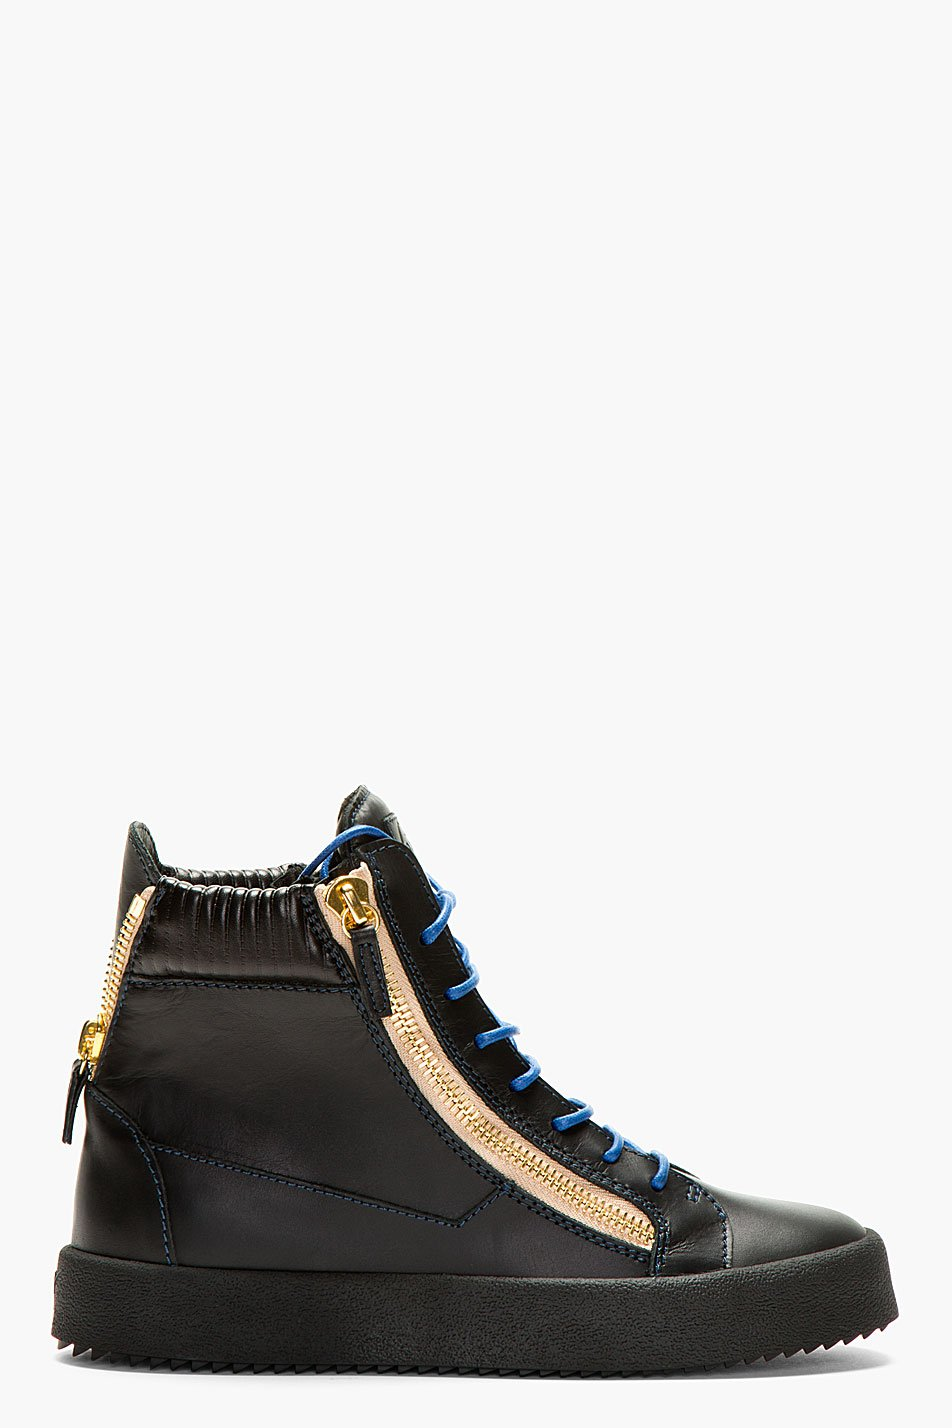 giuseppe zanotti black leather contrast laces high_top sneakers